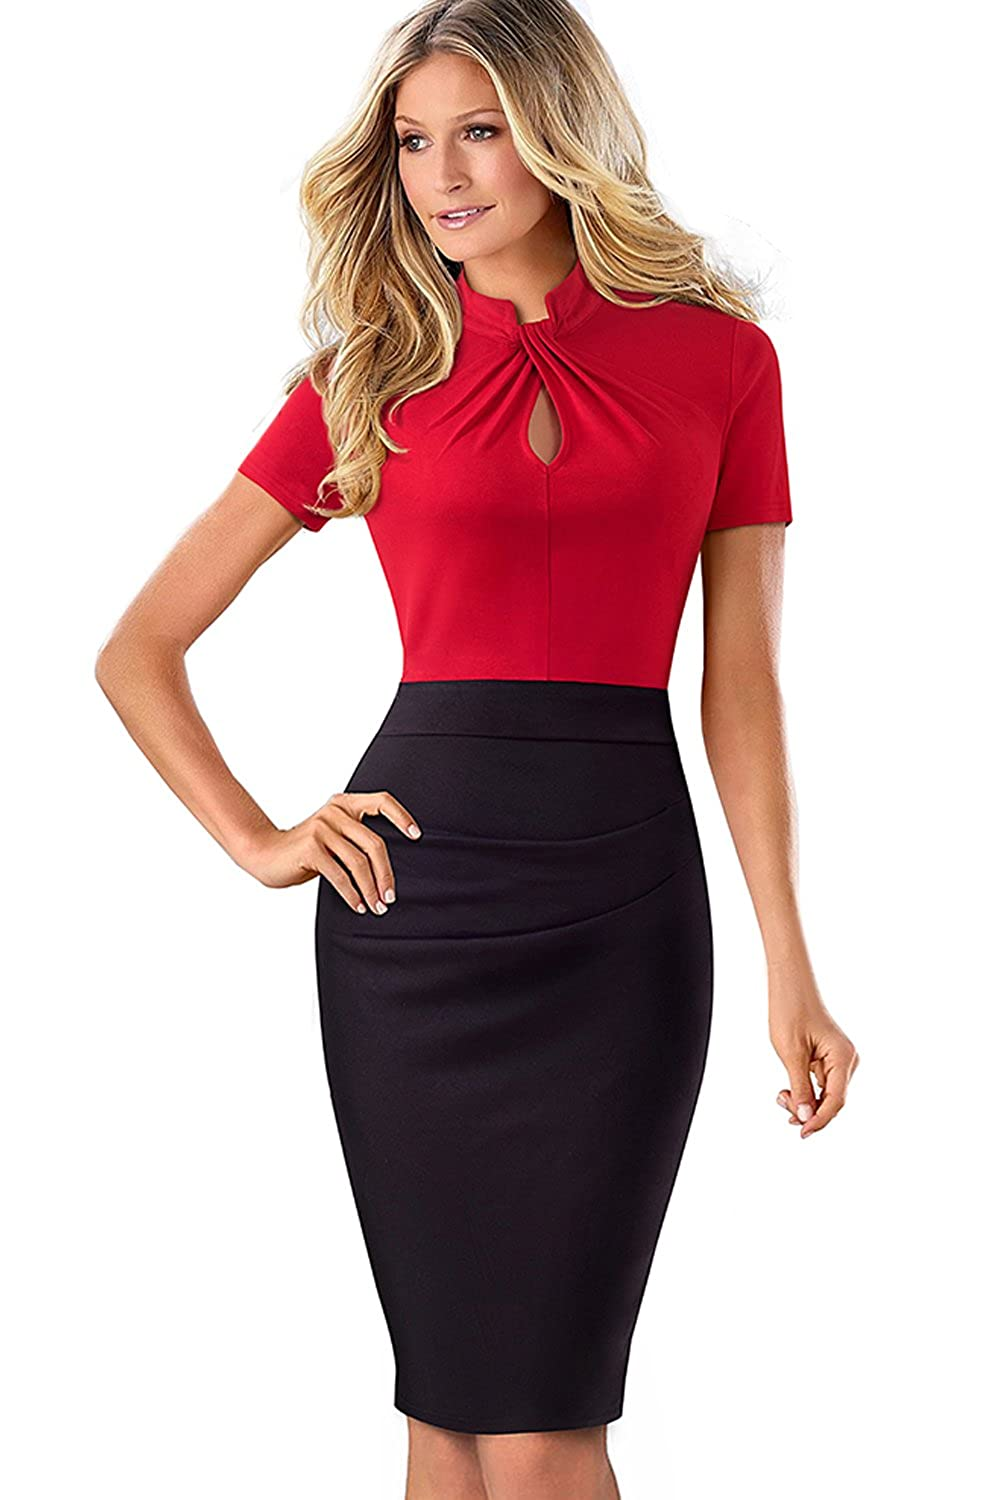 Top 10 wholesale 1 Piece Dress Knee Length - Chinabrands.com a998ee228